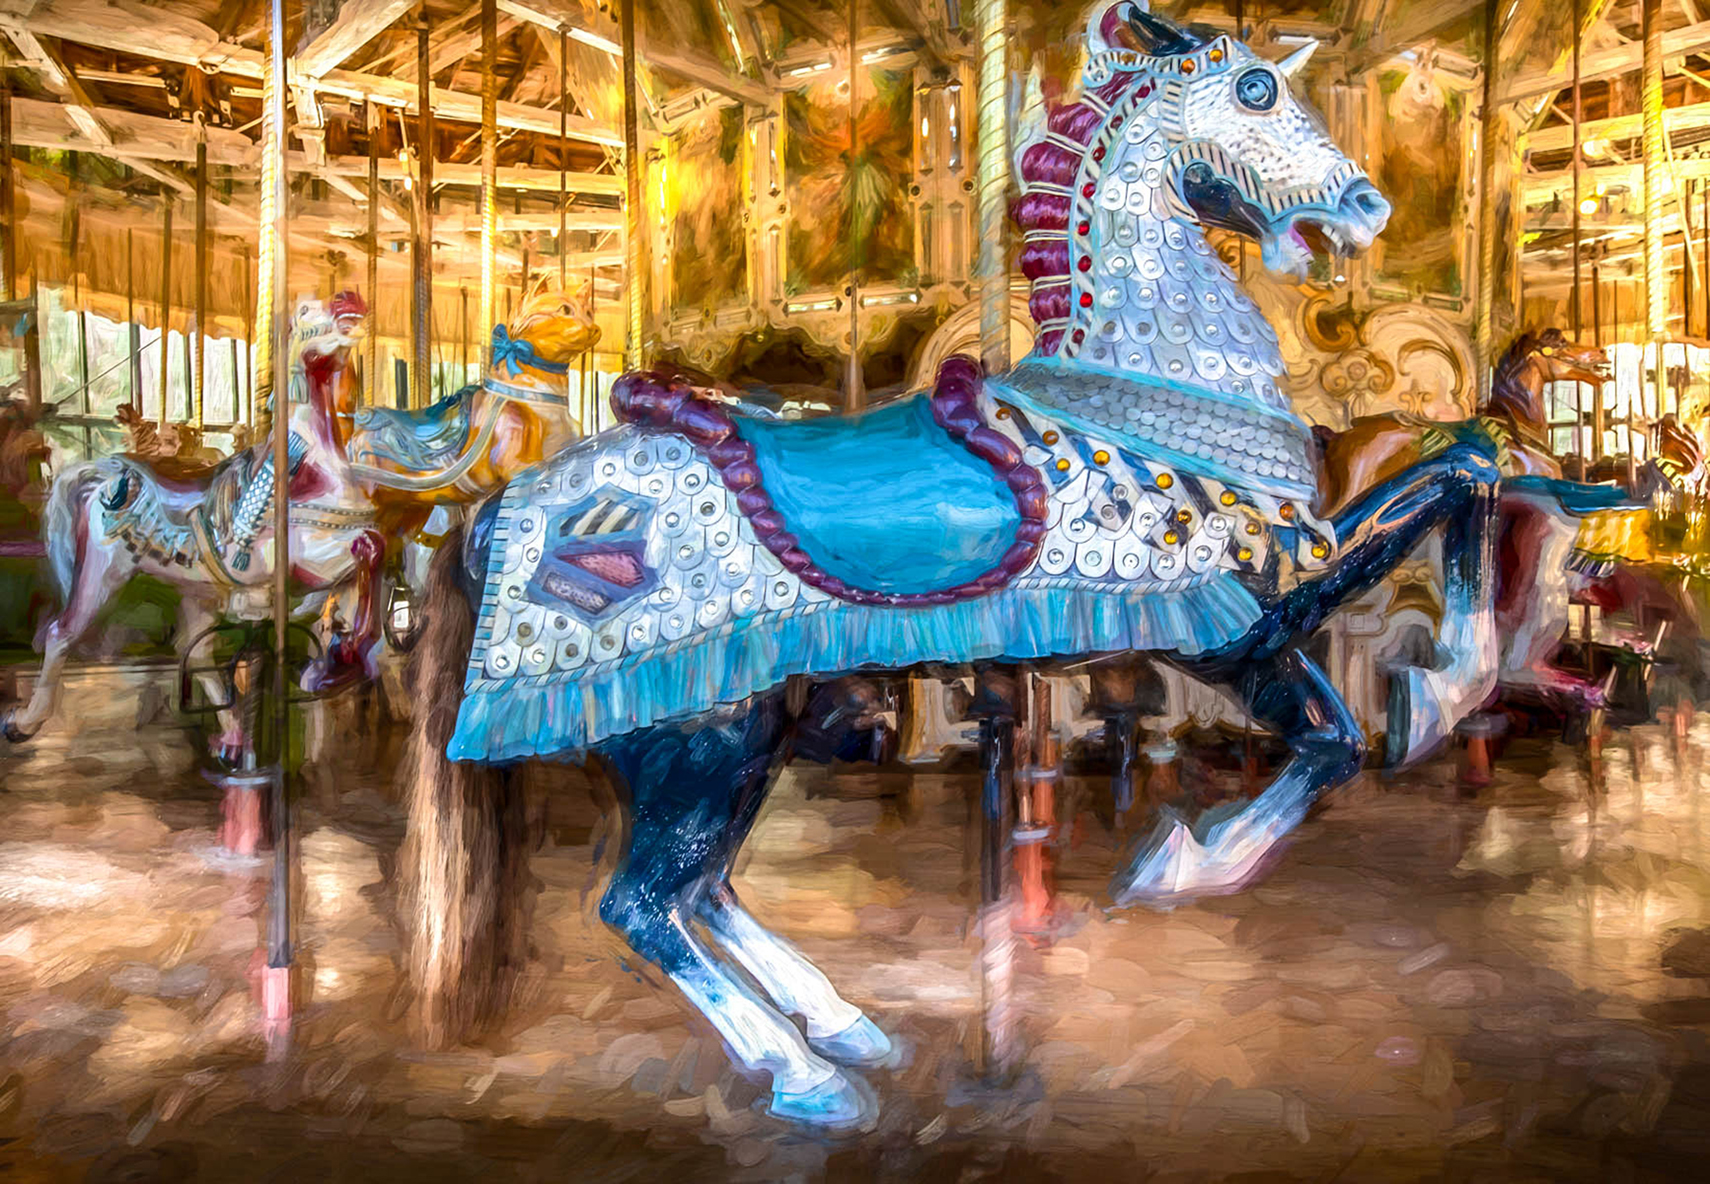 Carousel by Jim Berger Photographer